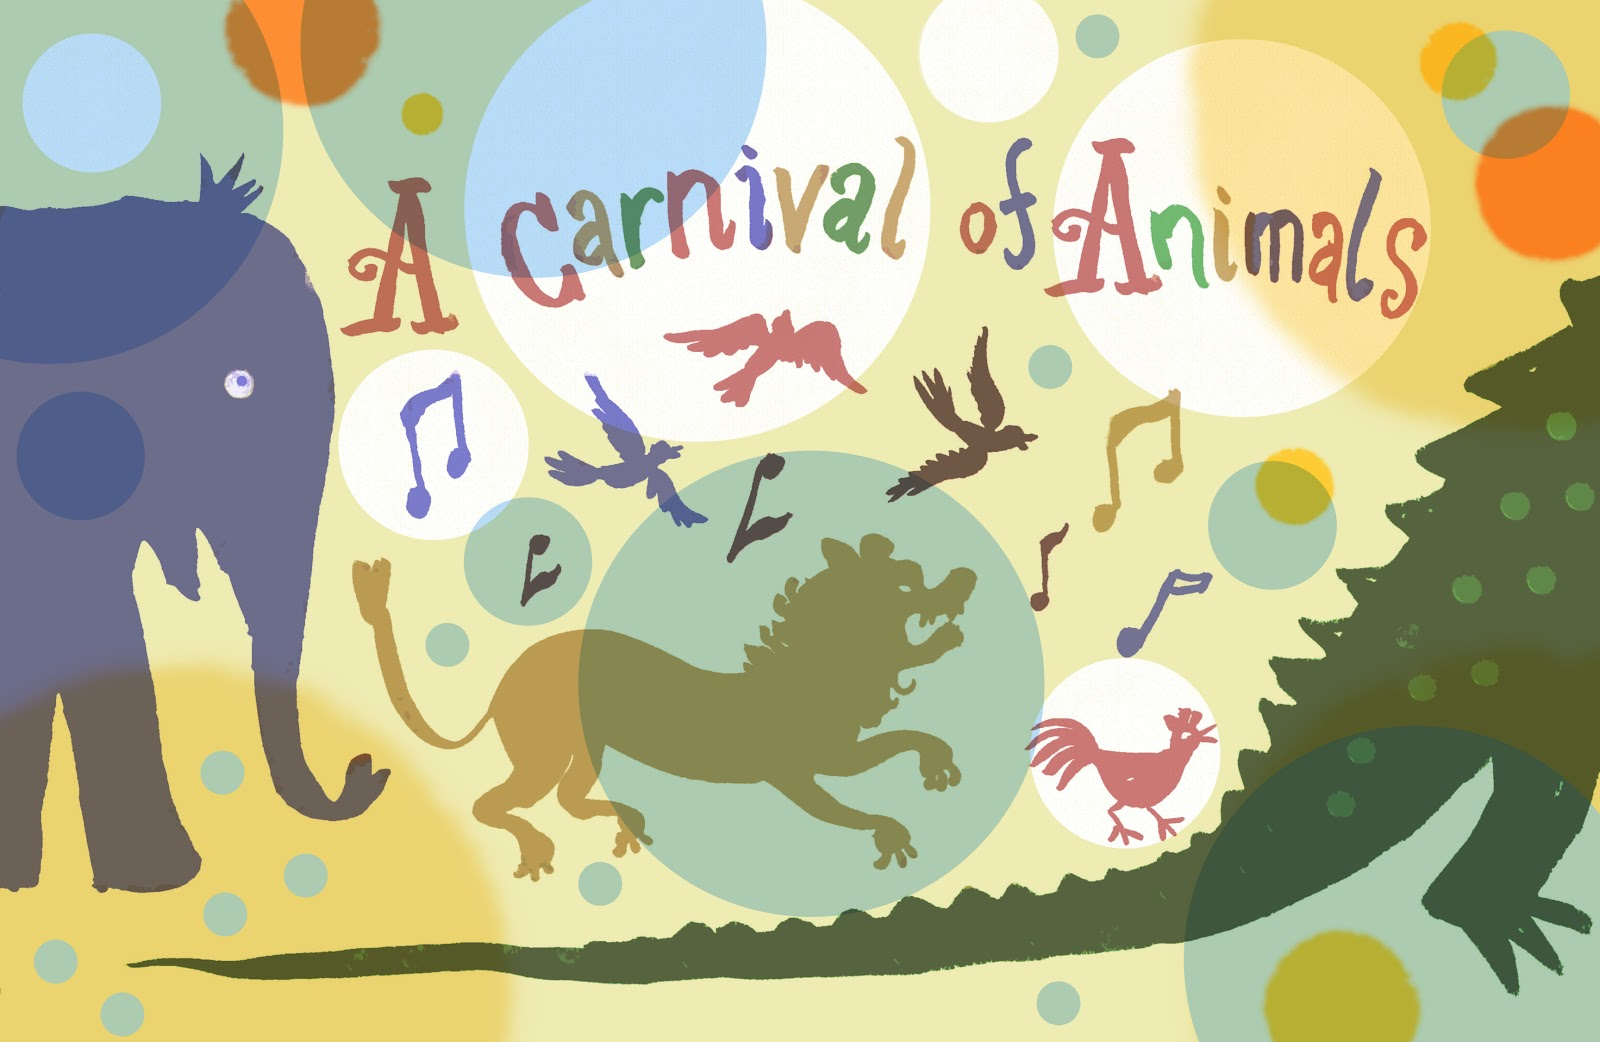 Presenting A Carnival Of Animals